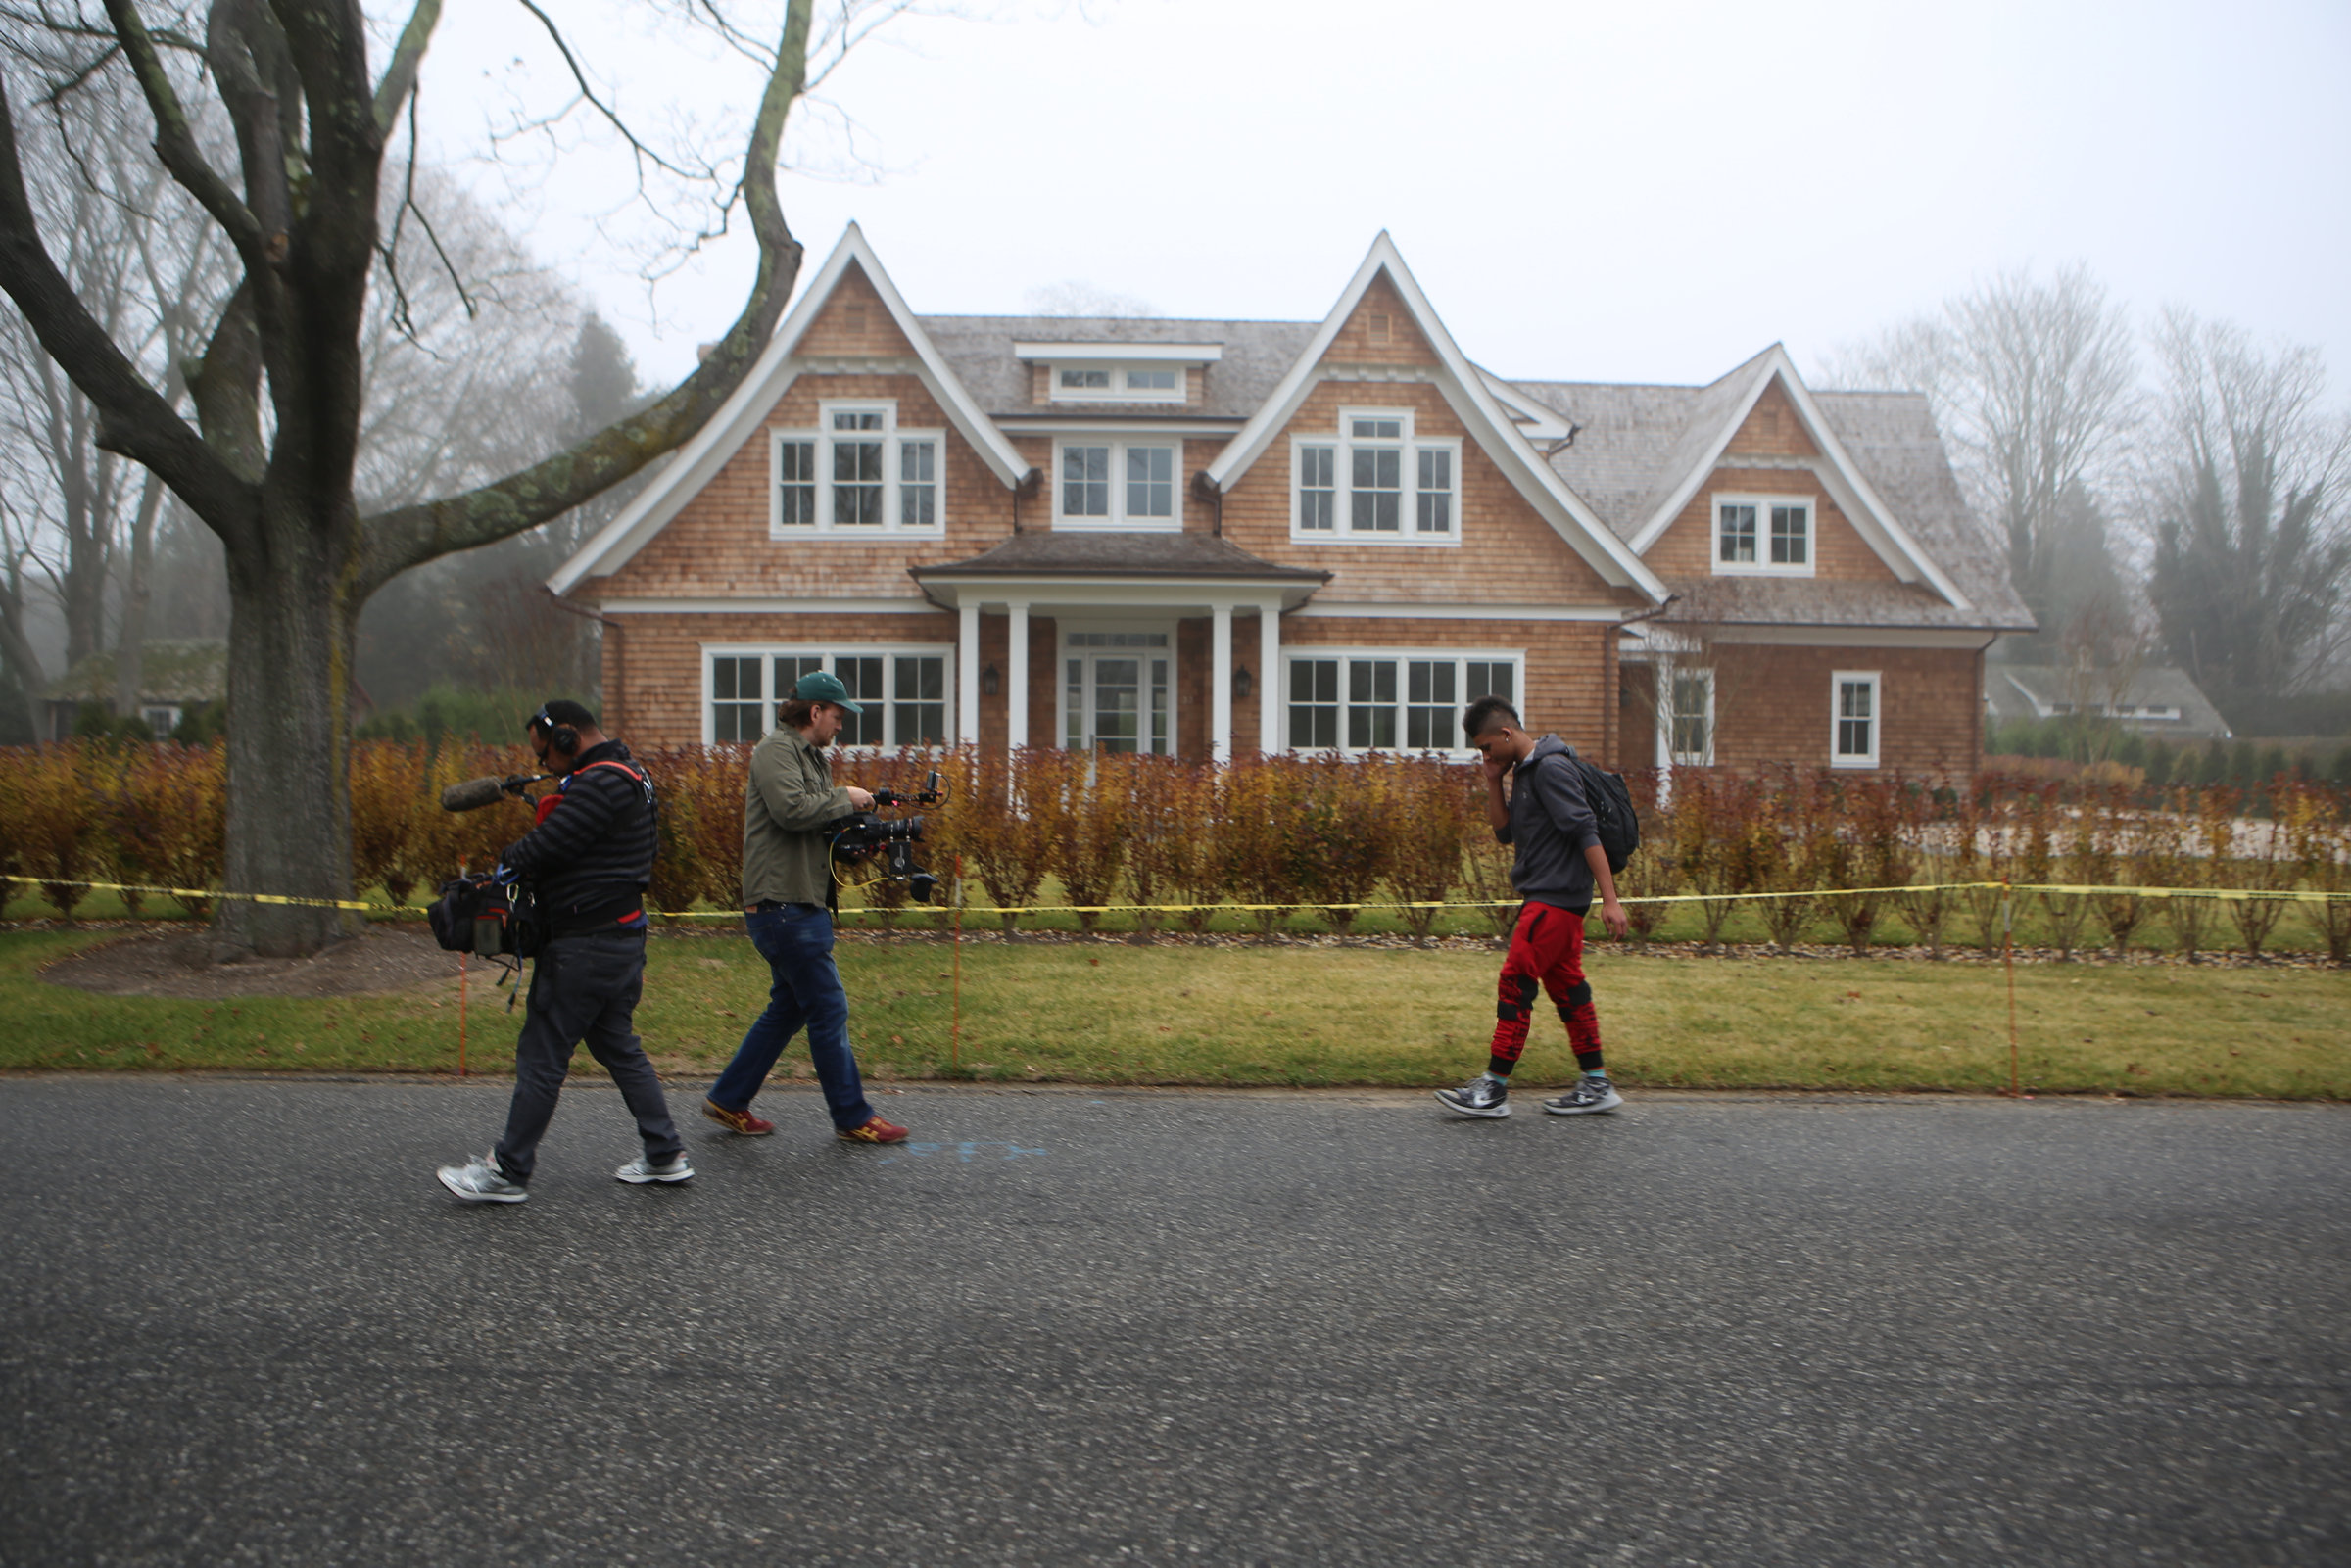 The documentary film crew follows JP Harding as he walks by a house in Bridgehampton.